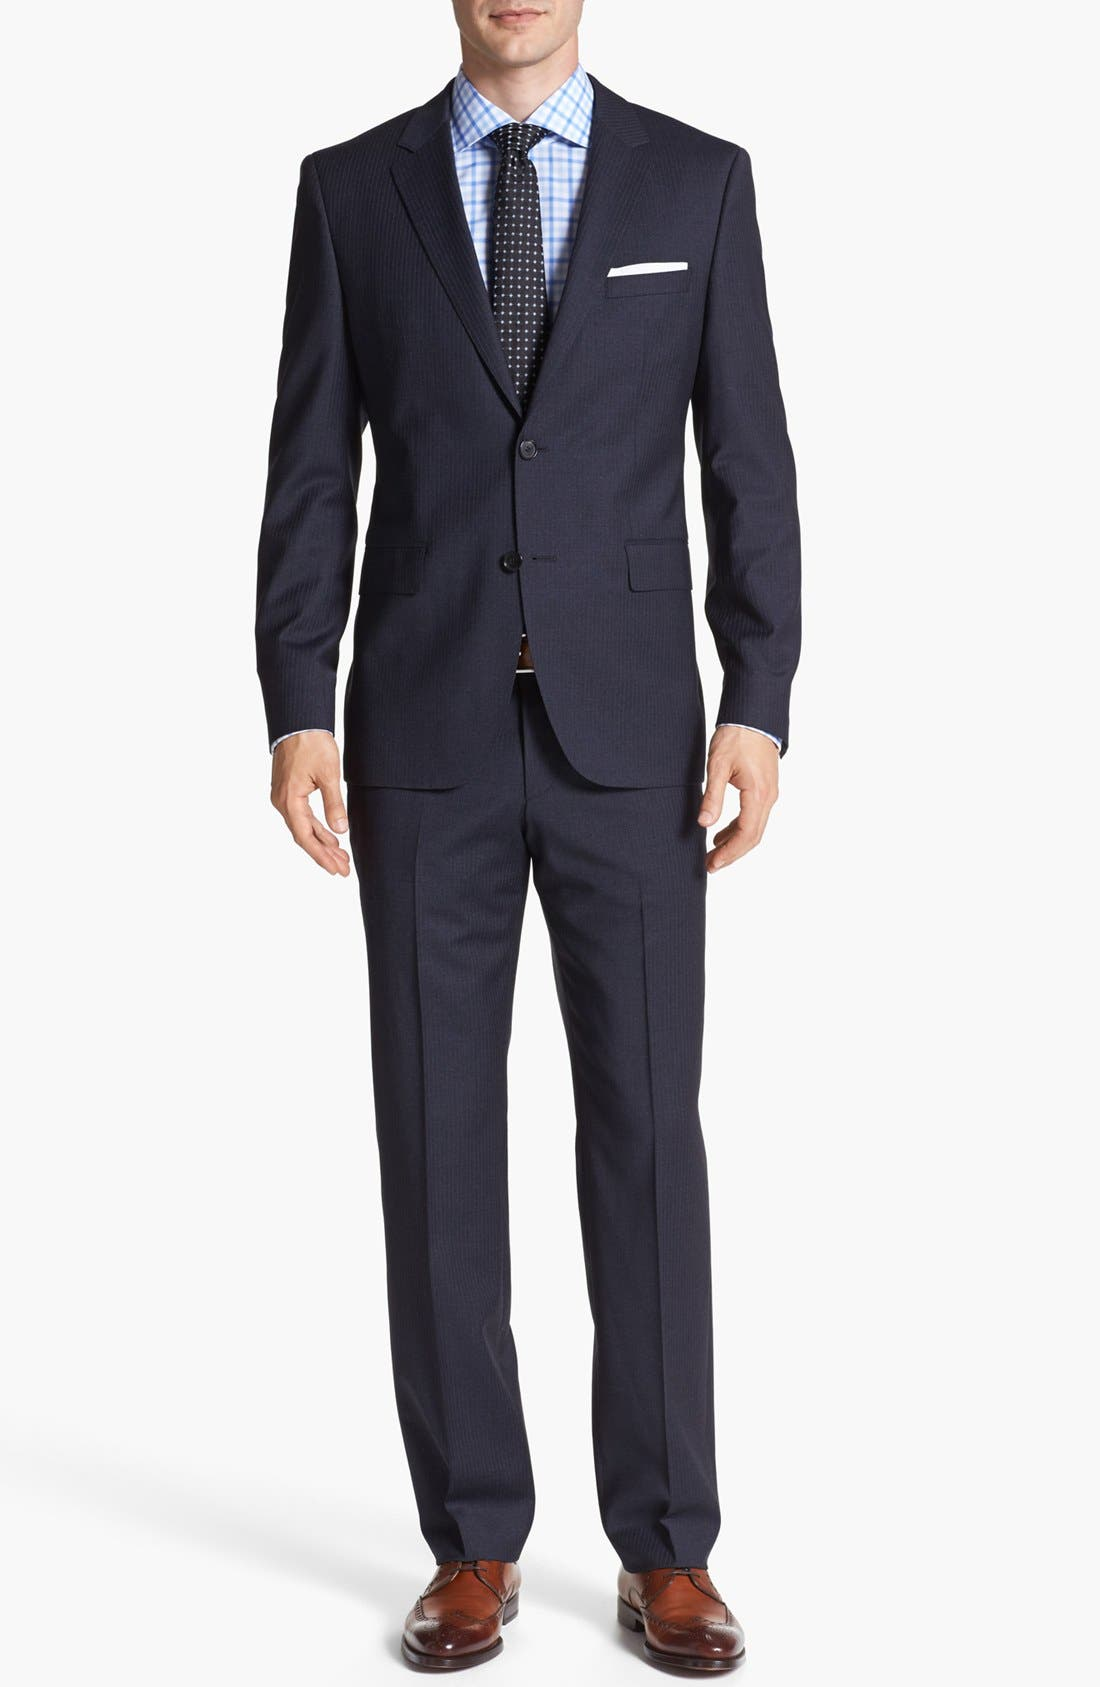 Main Image - BOSS HUGO BOSS 'James/Sharp' Trim Fit Stripe Suit